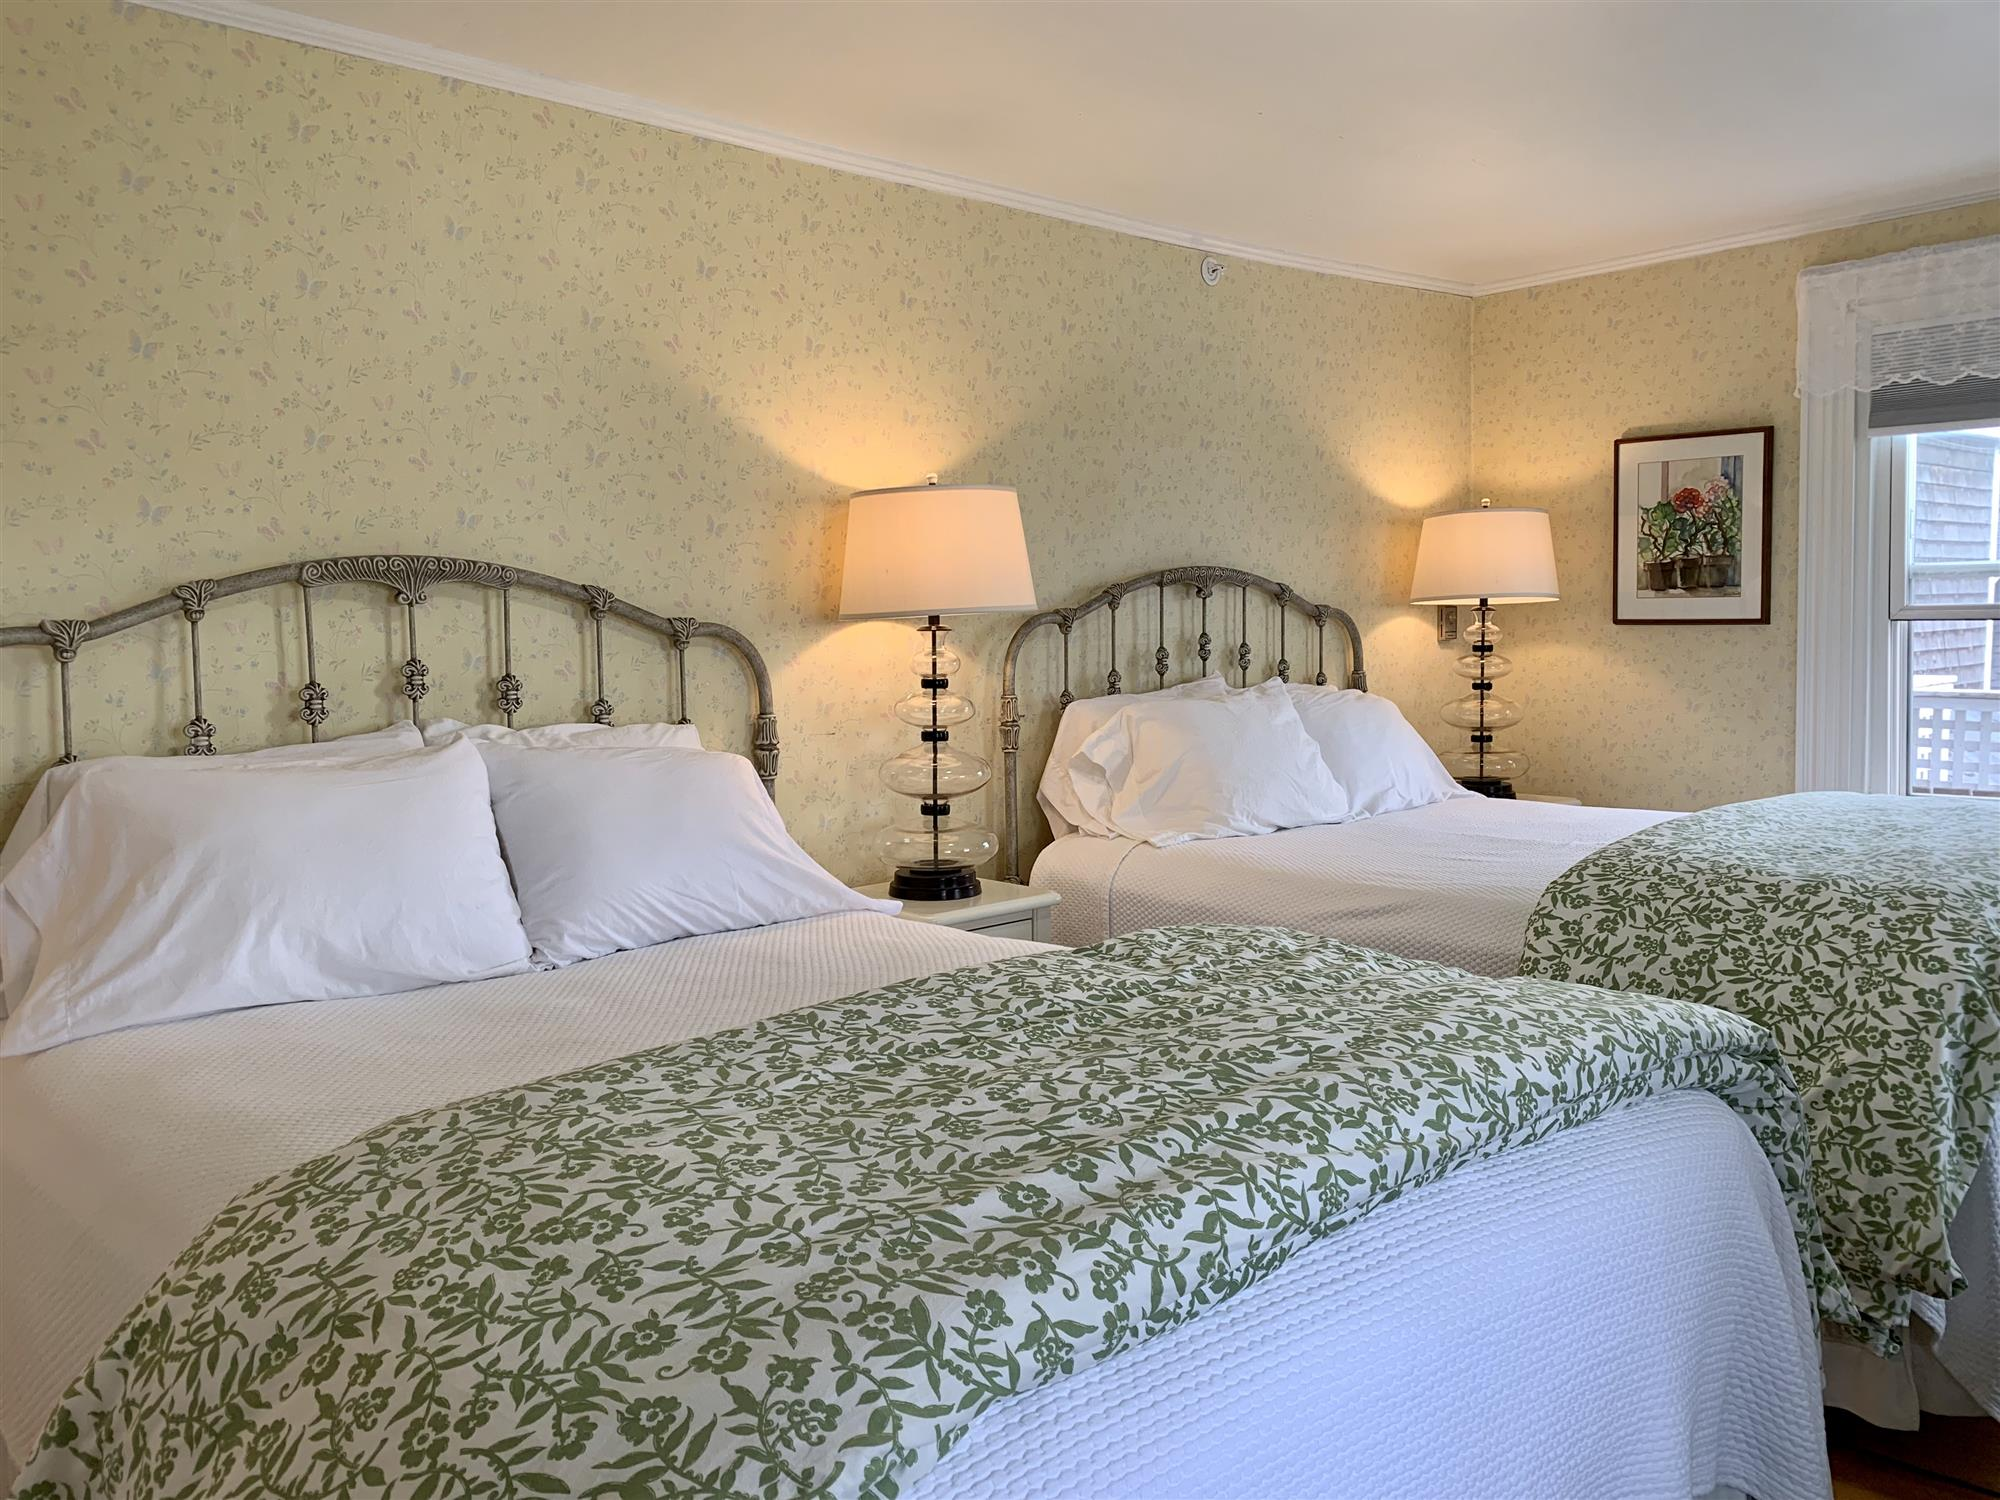 Image for 14) The Brothers (Room 2) at Ocean House